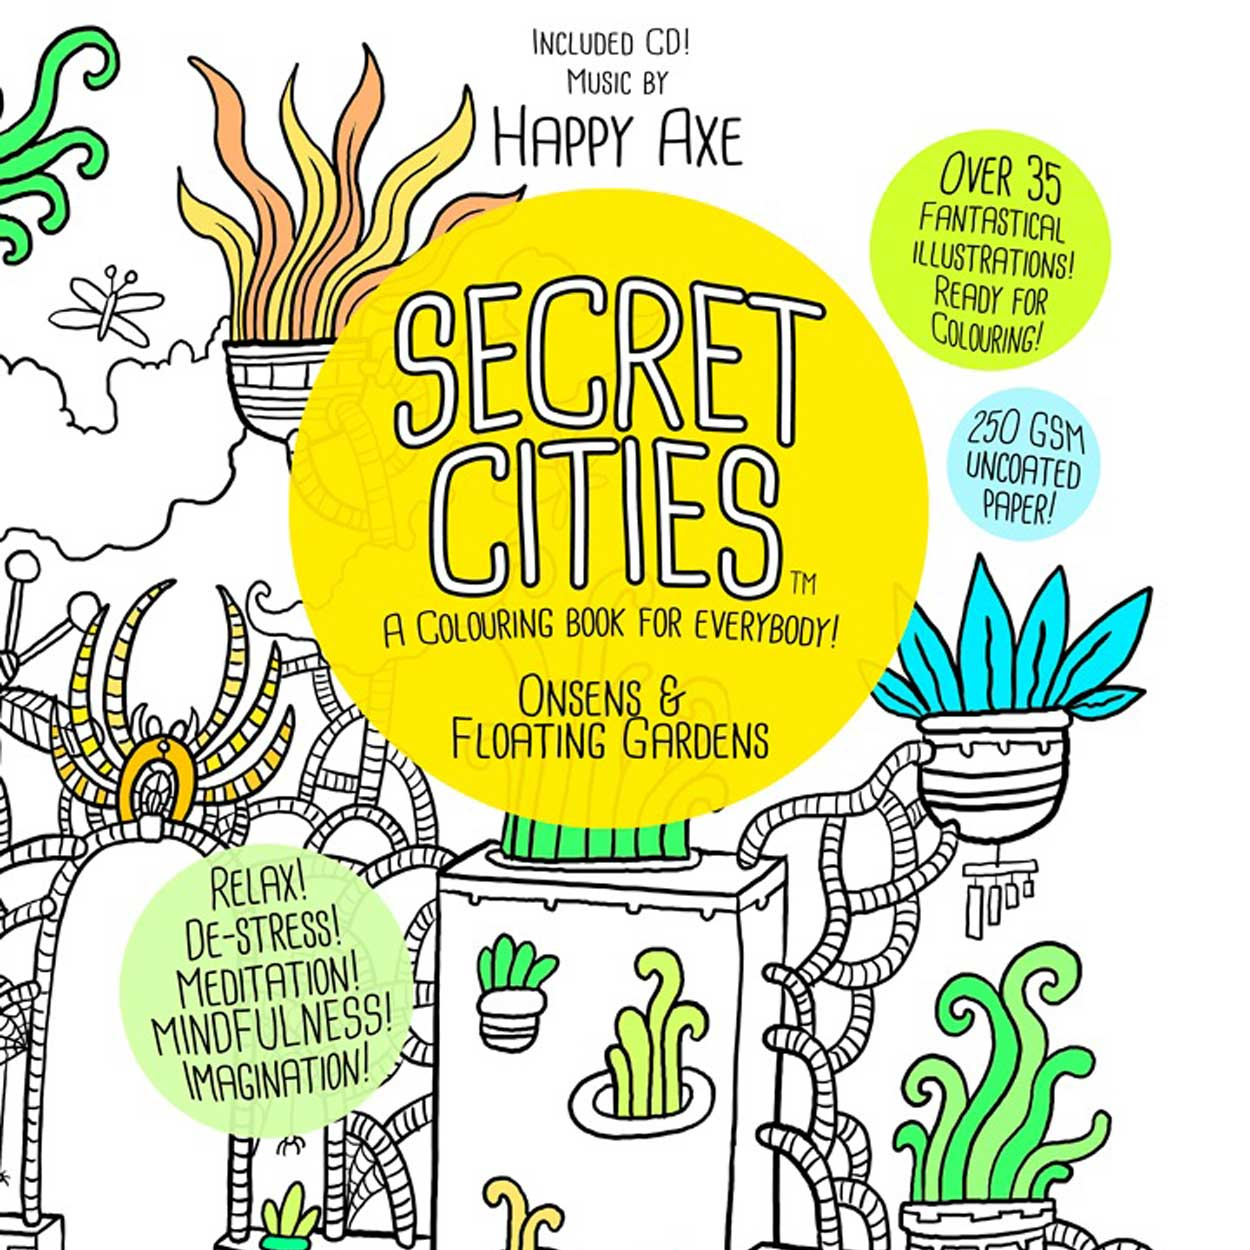 Paul Summerfield  recently successfully Kickstartered his first premium quality colouring book  for adults, called  Secret Cities  (all ages). You know, for relaxation, de-stressing and all those other buzz words which you have have heard before. Illustrations inspired by travels in Japan and Australia. The book also includes a CD of tranquil sounds by Happy Axe (aka Emma Kelly)   Find out more here.